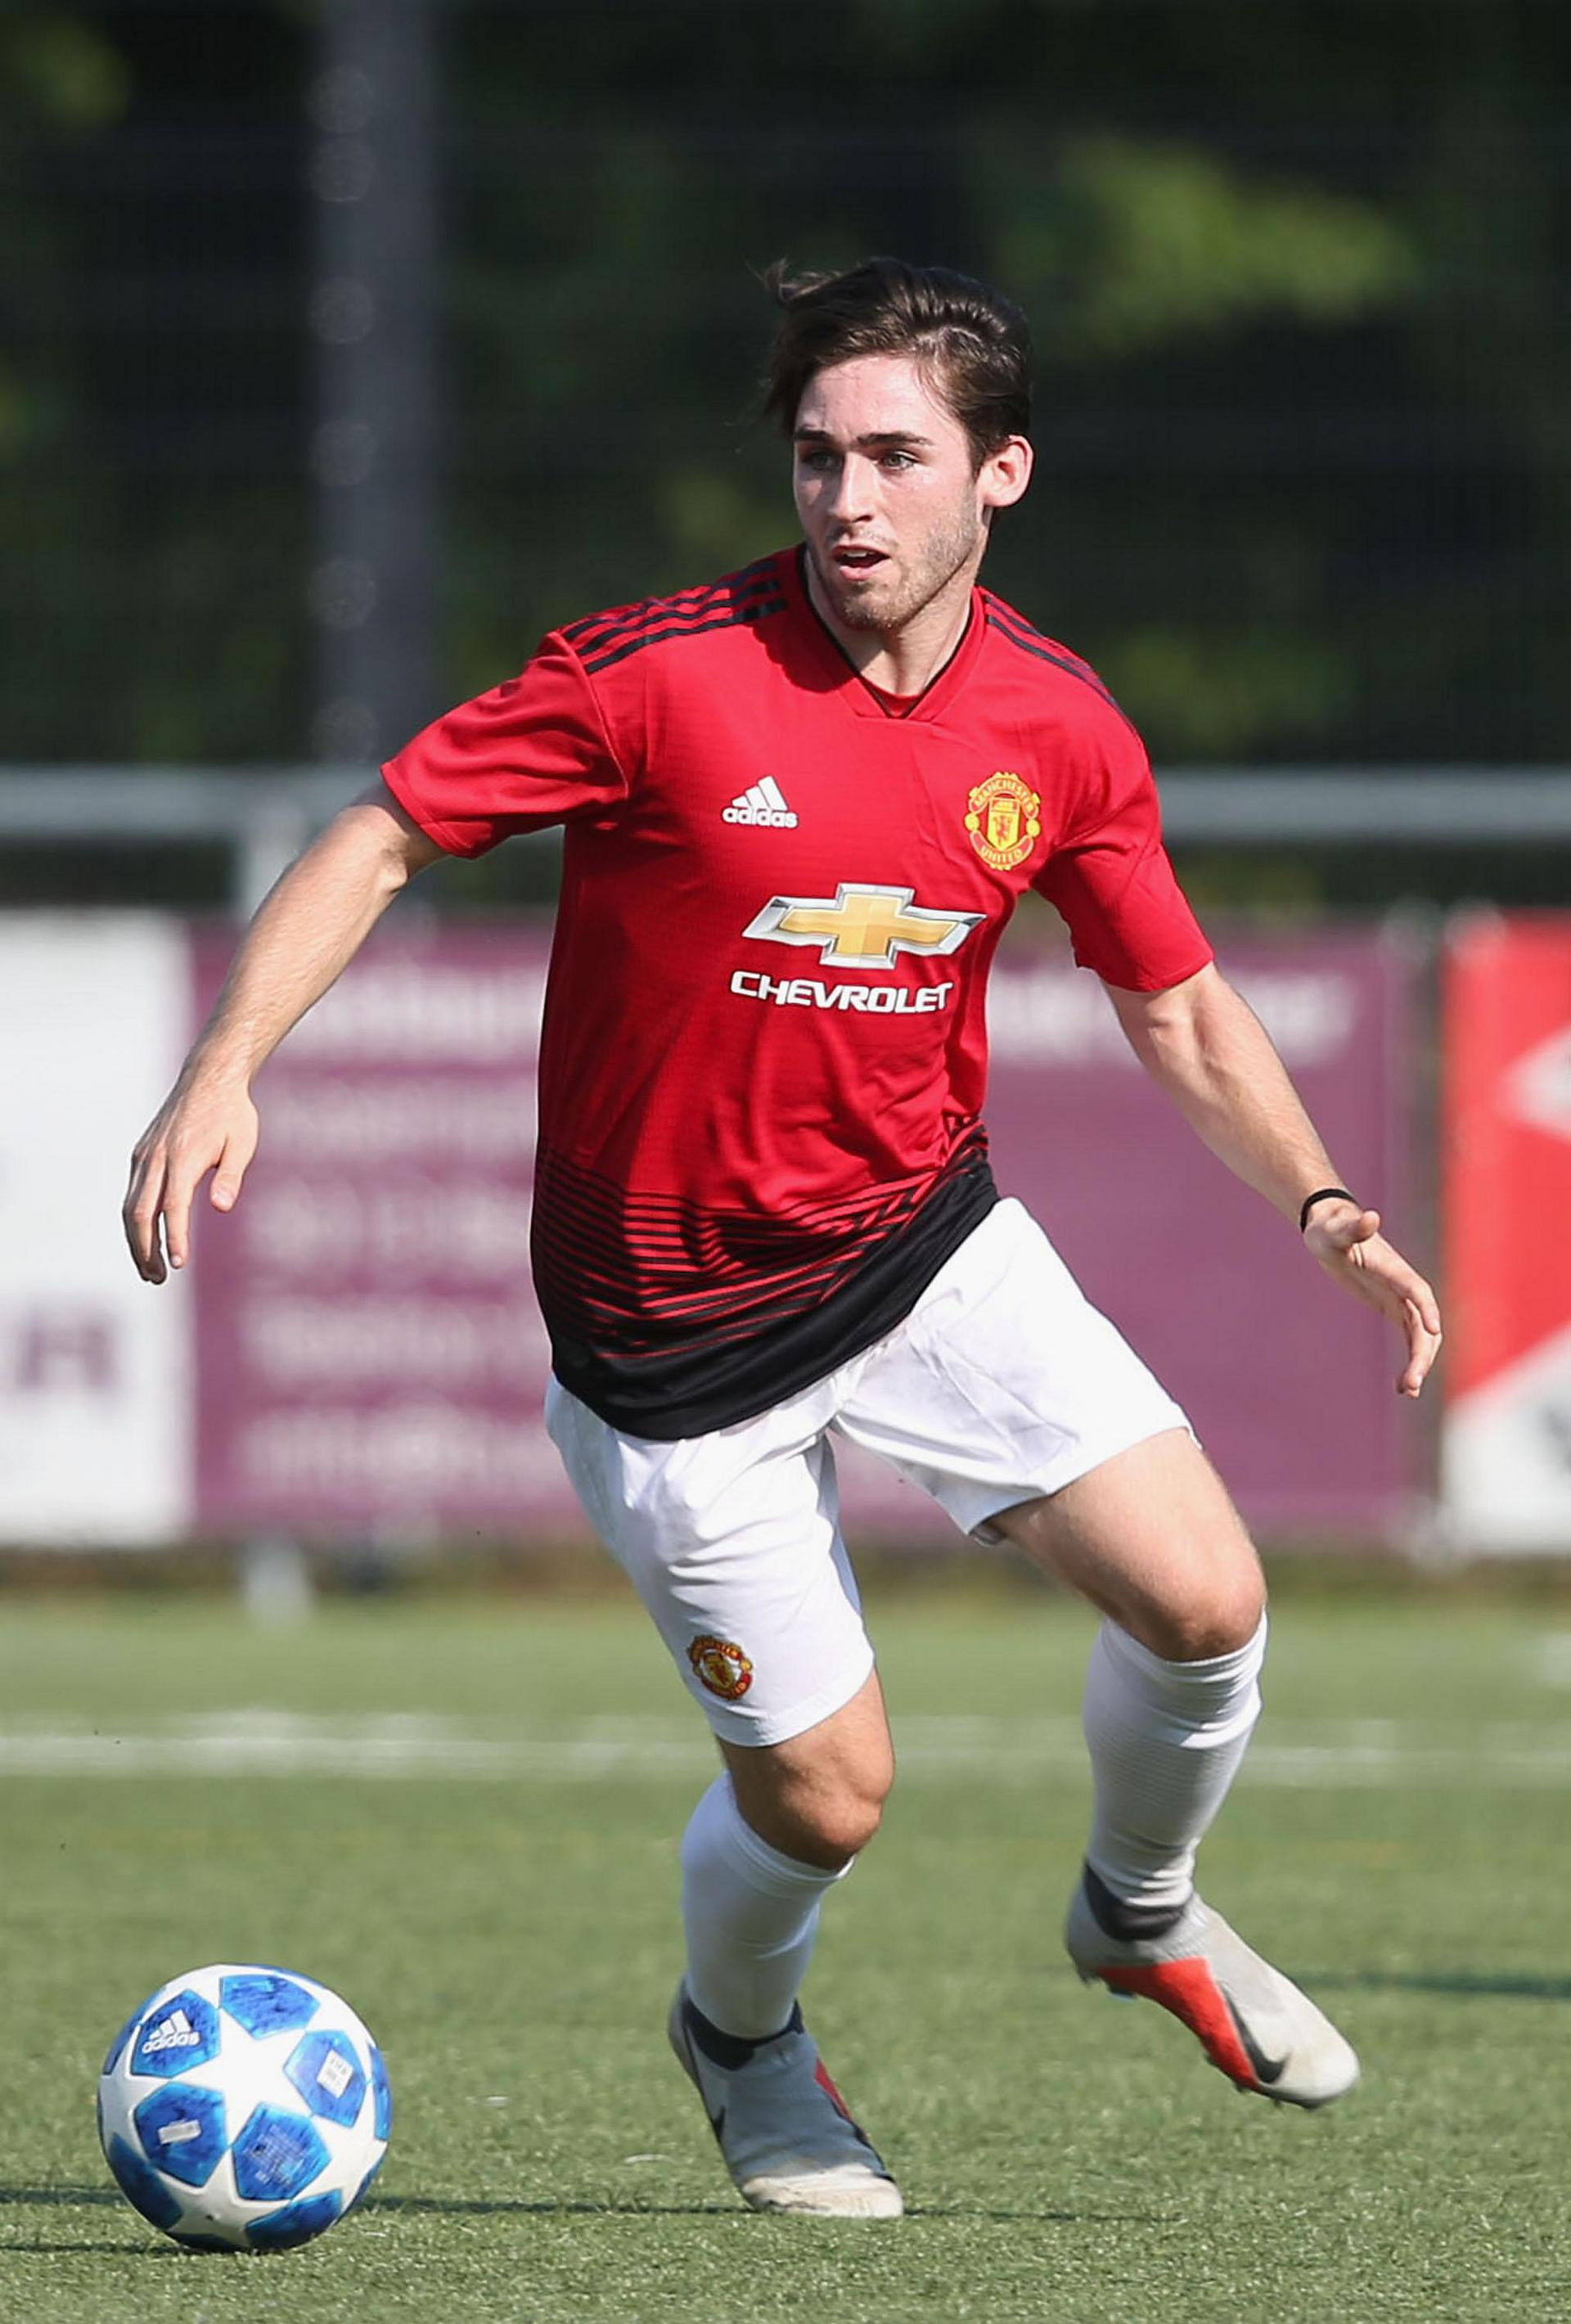 Aidan Balow on the ball in the UEFA Youth League.